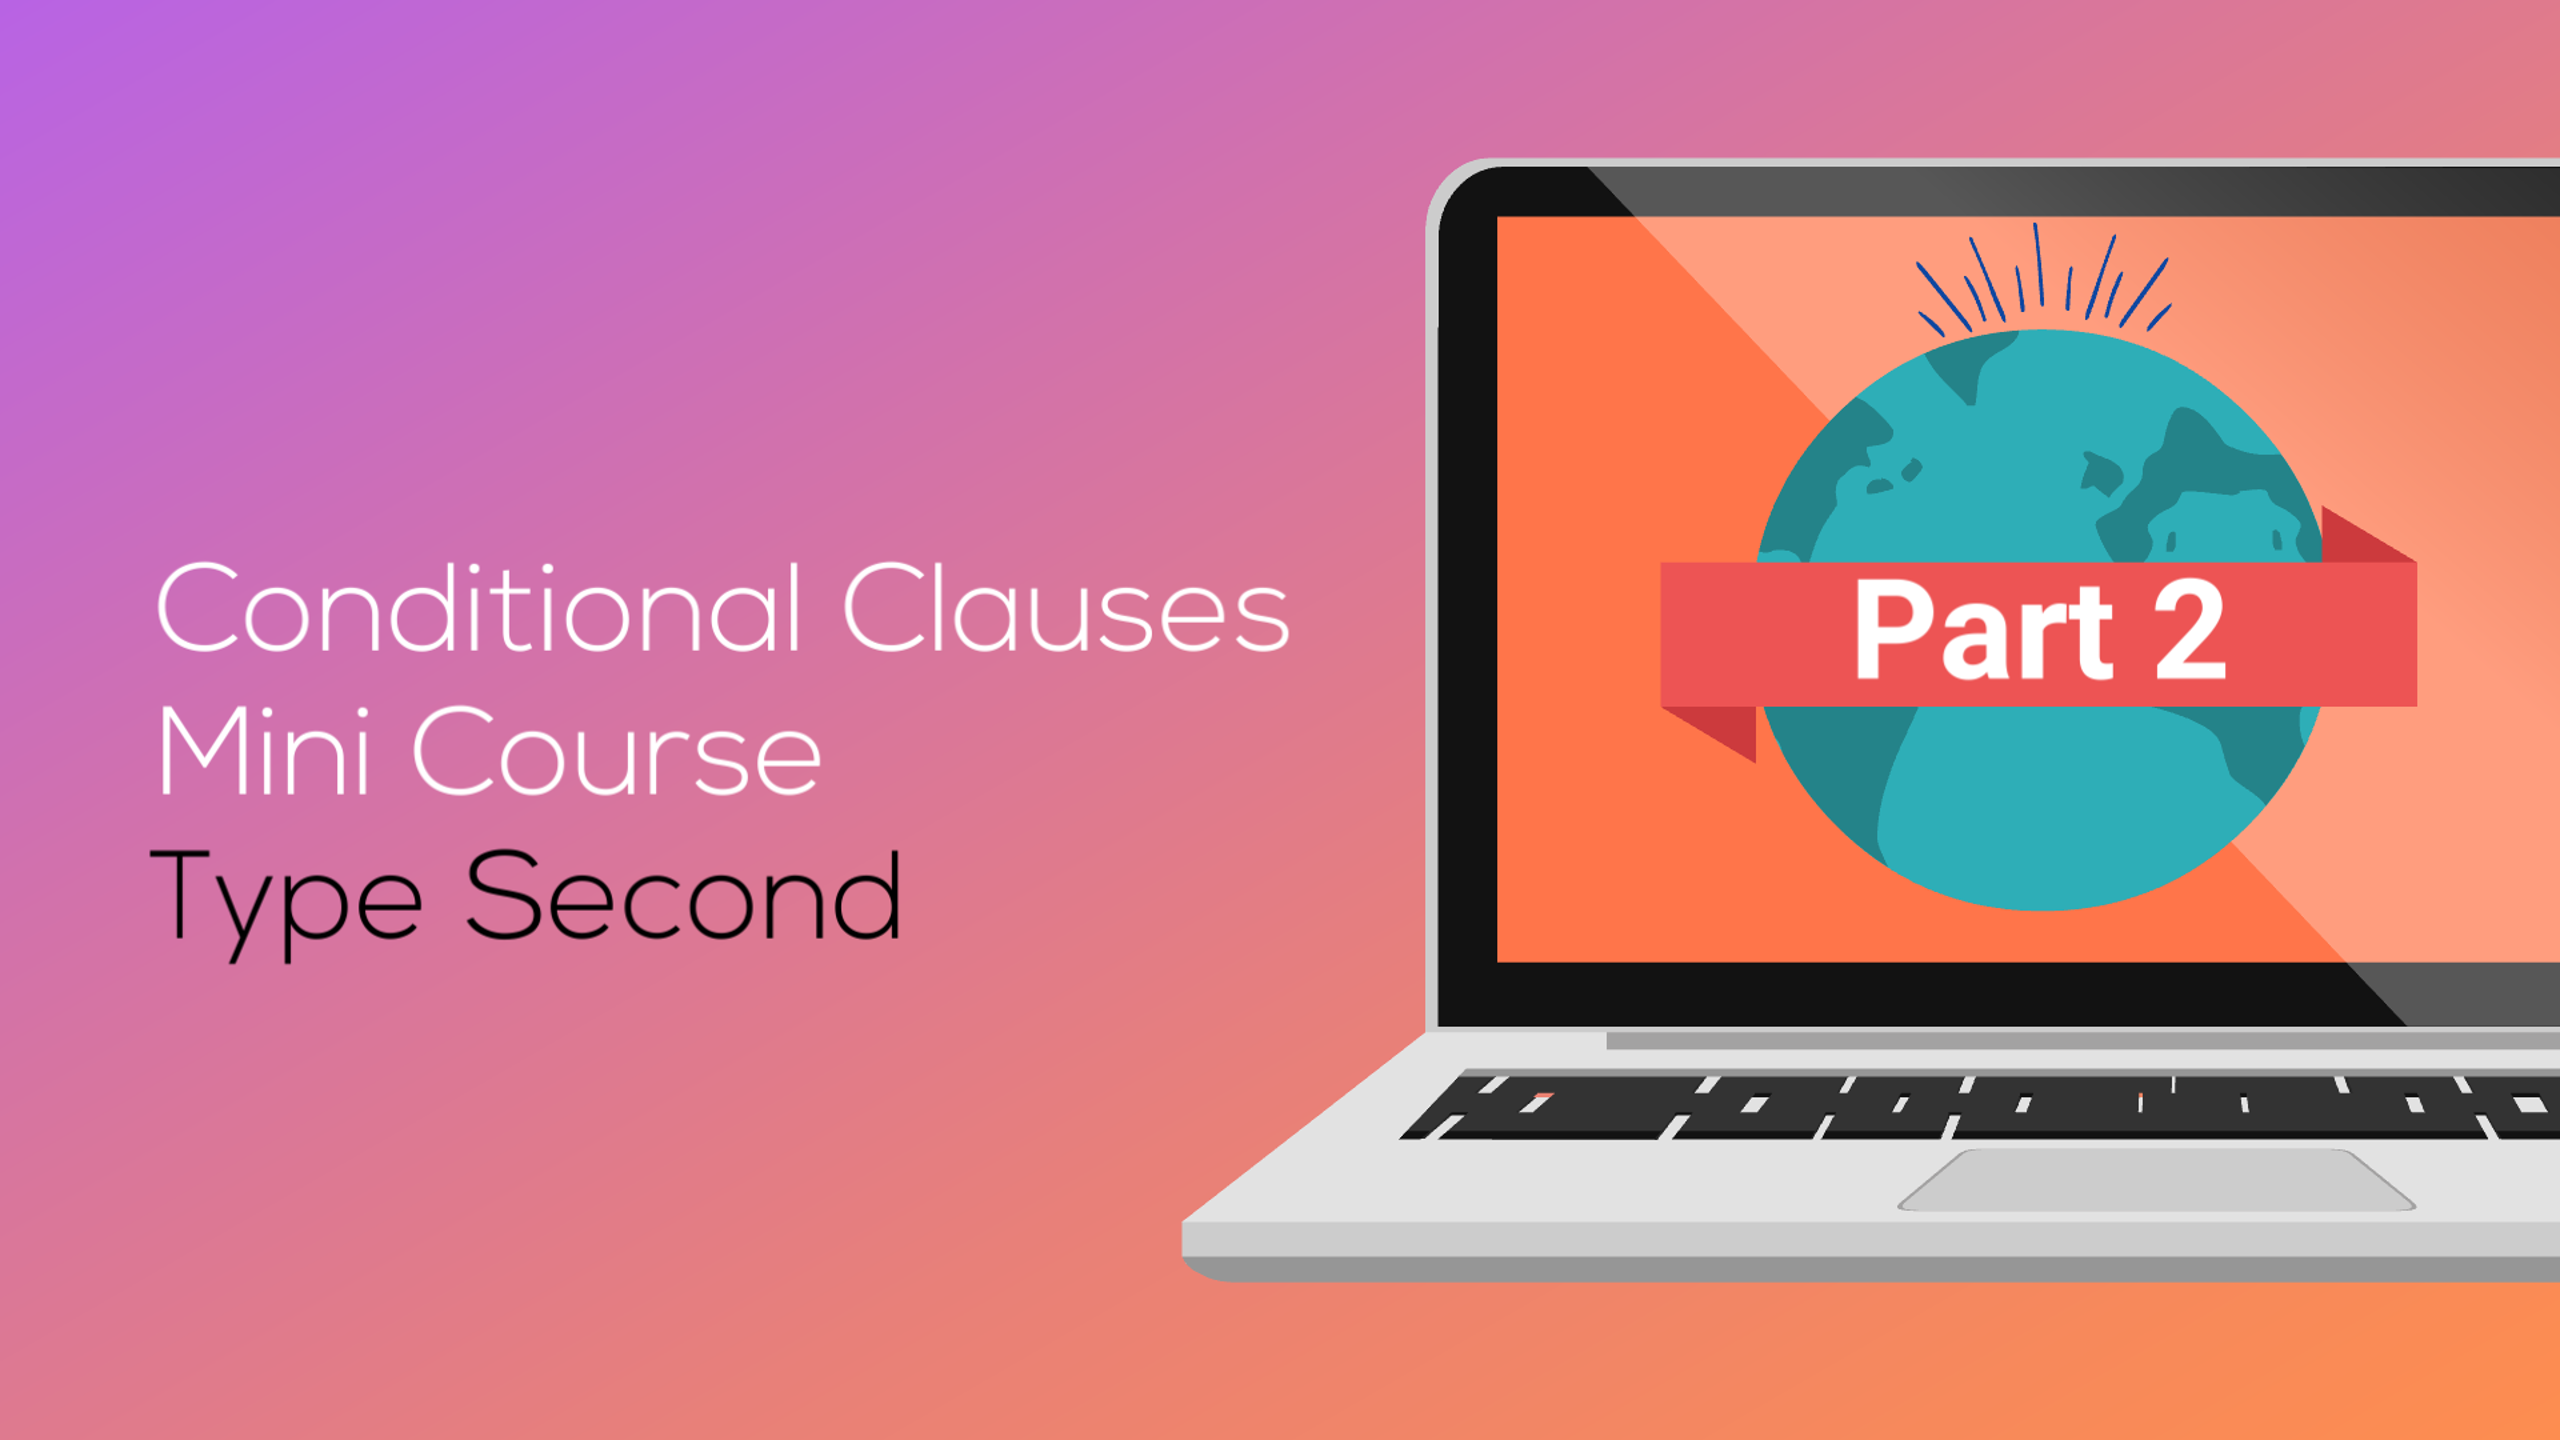 Conditional Clauses Mini Course Part 2